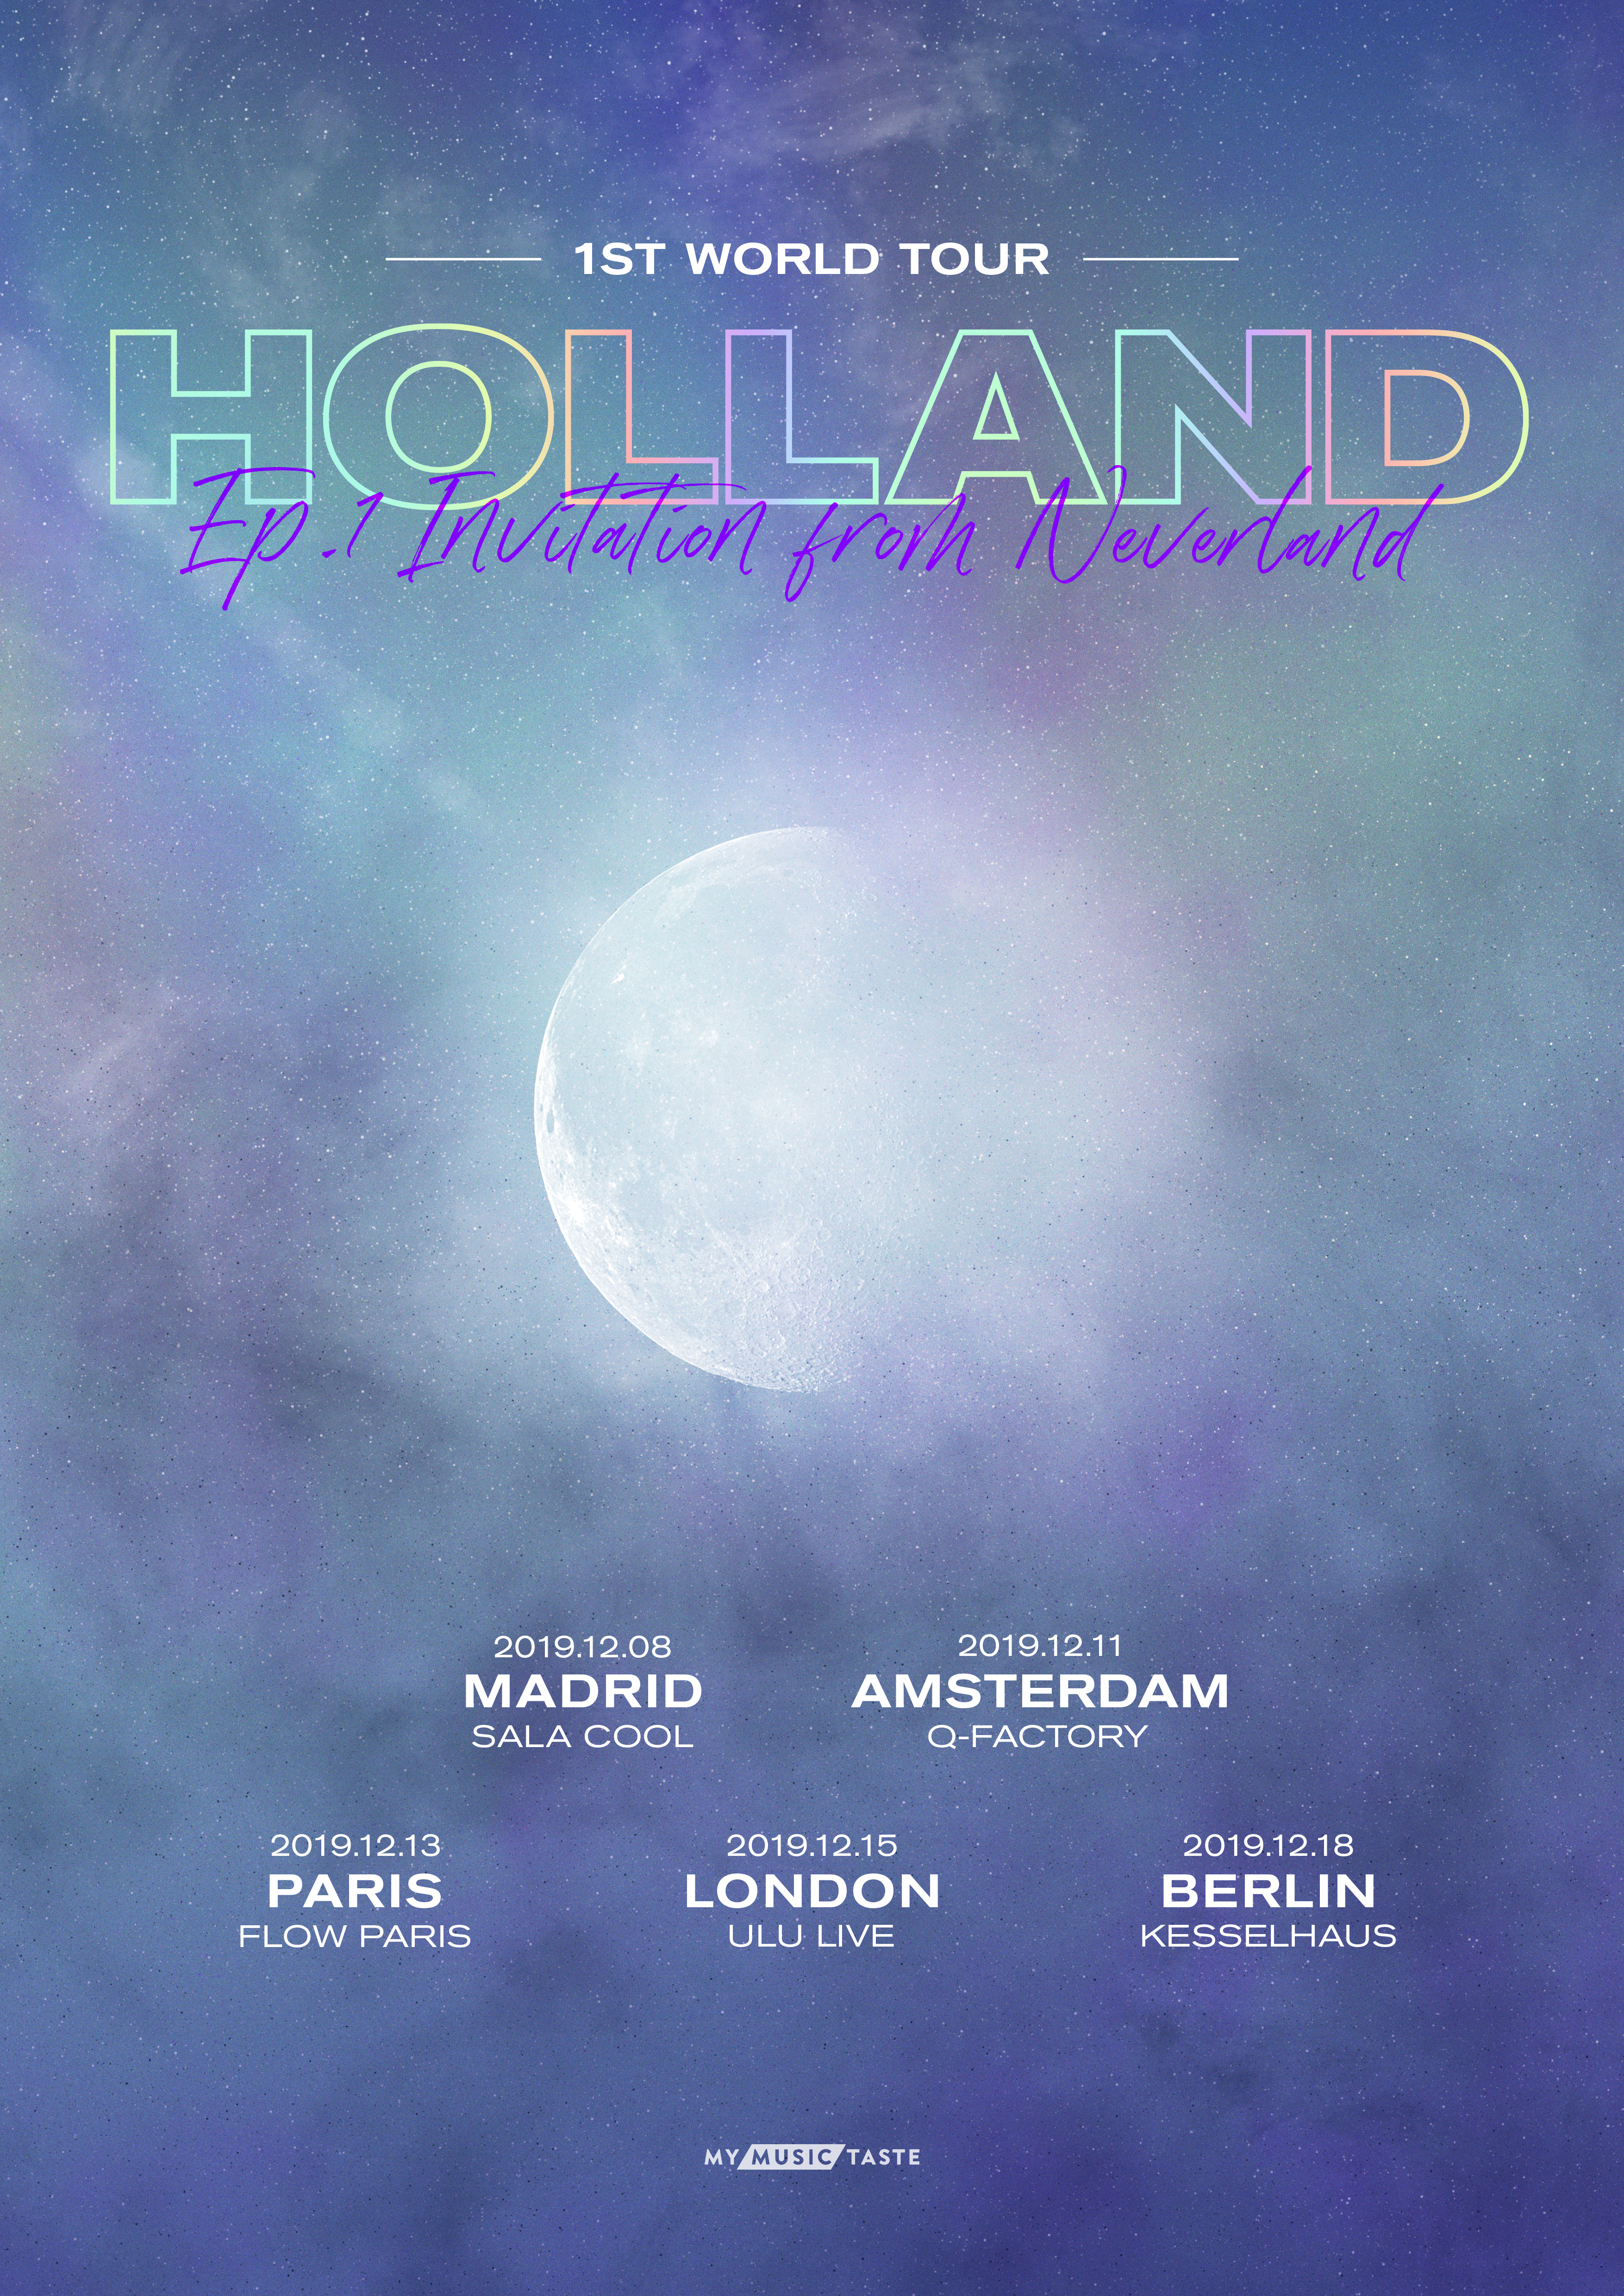 """Holland 1st World Tour """"Ep.1: Invitation From Neverland"""" In Europe: Cities And Ticket Details"""